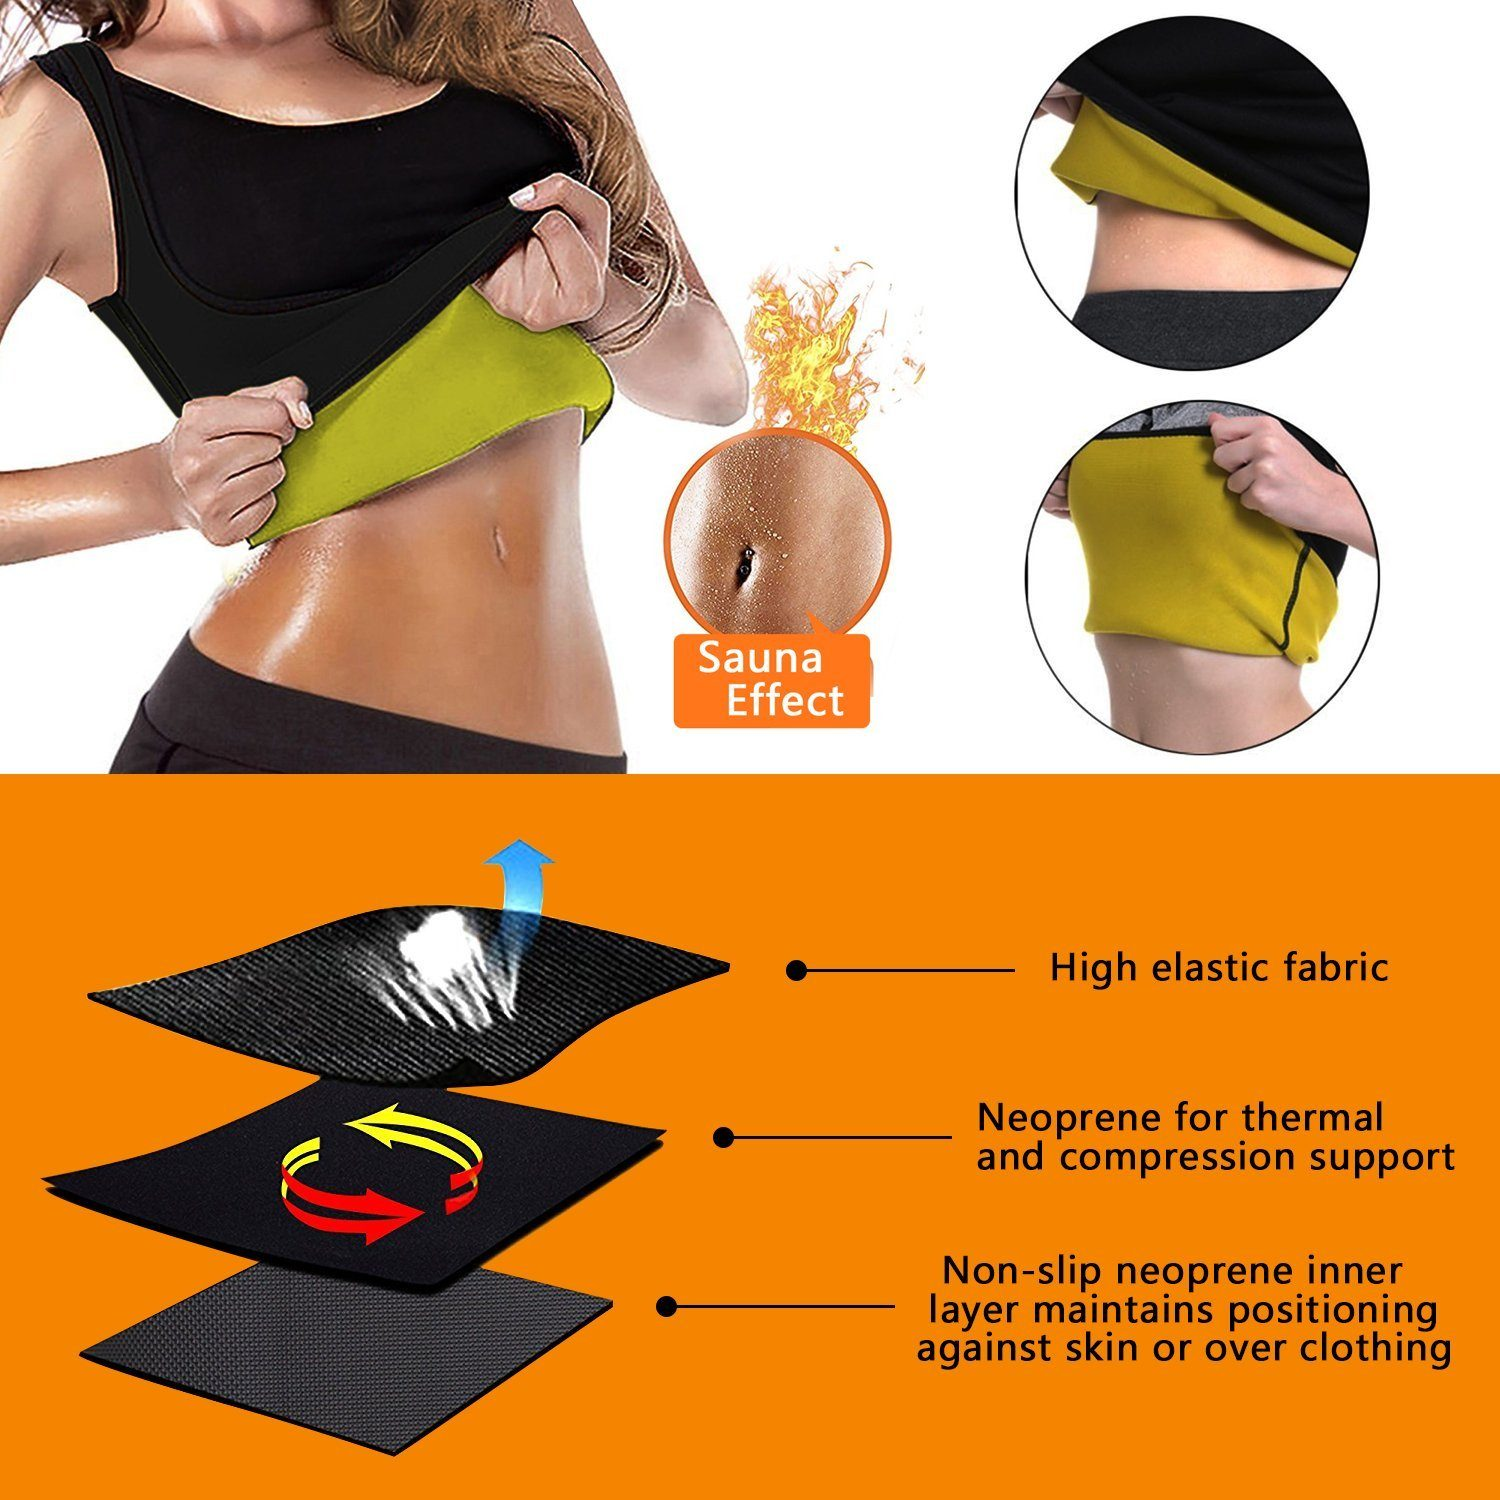 HOT SHAPER - Neotex Hot Shaper Suit For Women - Sweat While Working Instant Weight Reduction